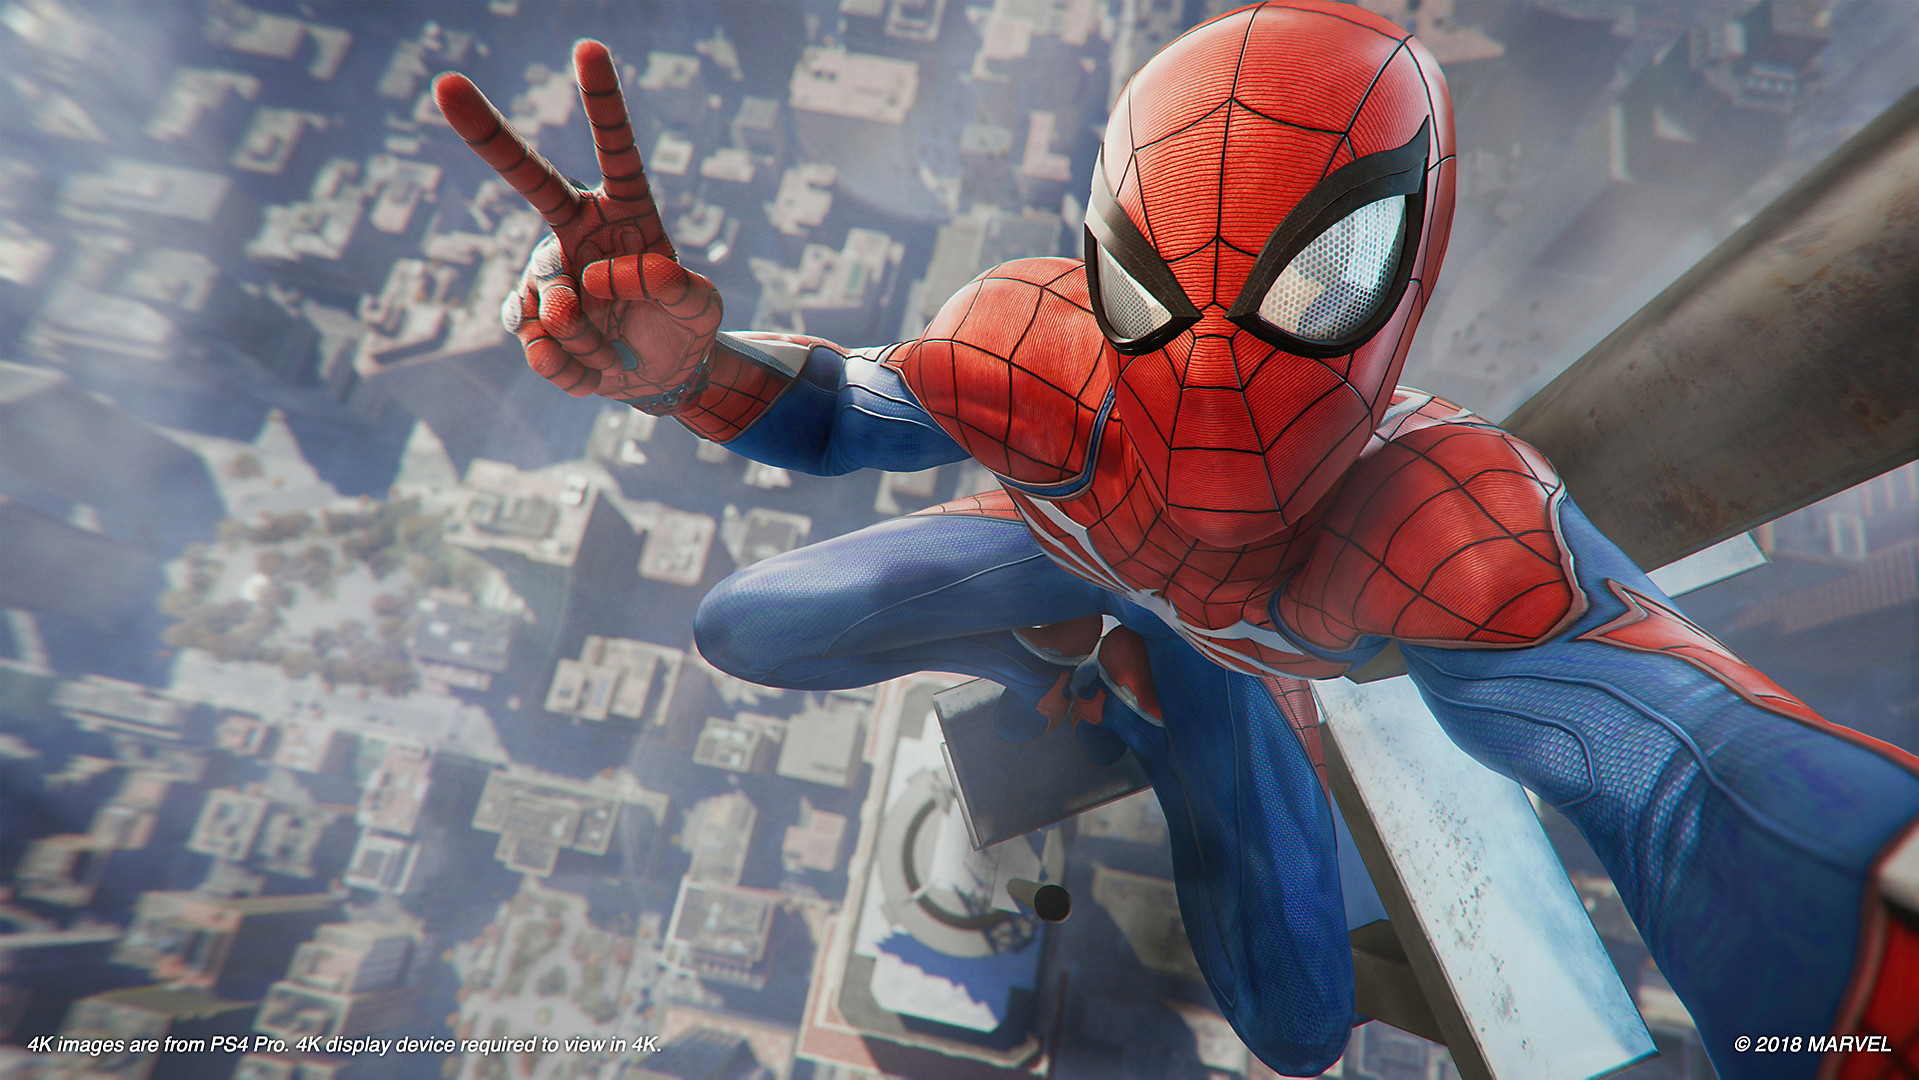 is spider man ps4 coming to xbox one? is spider-man ps4 exclusive